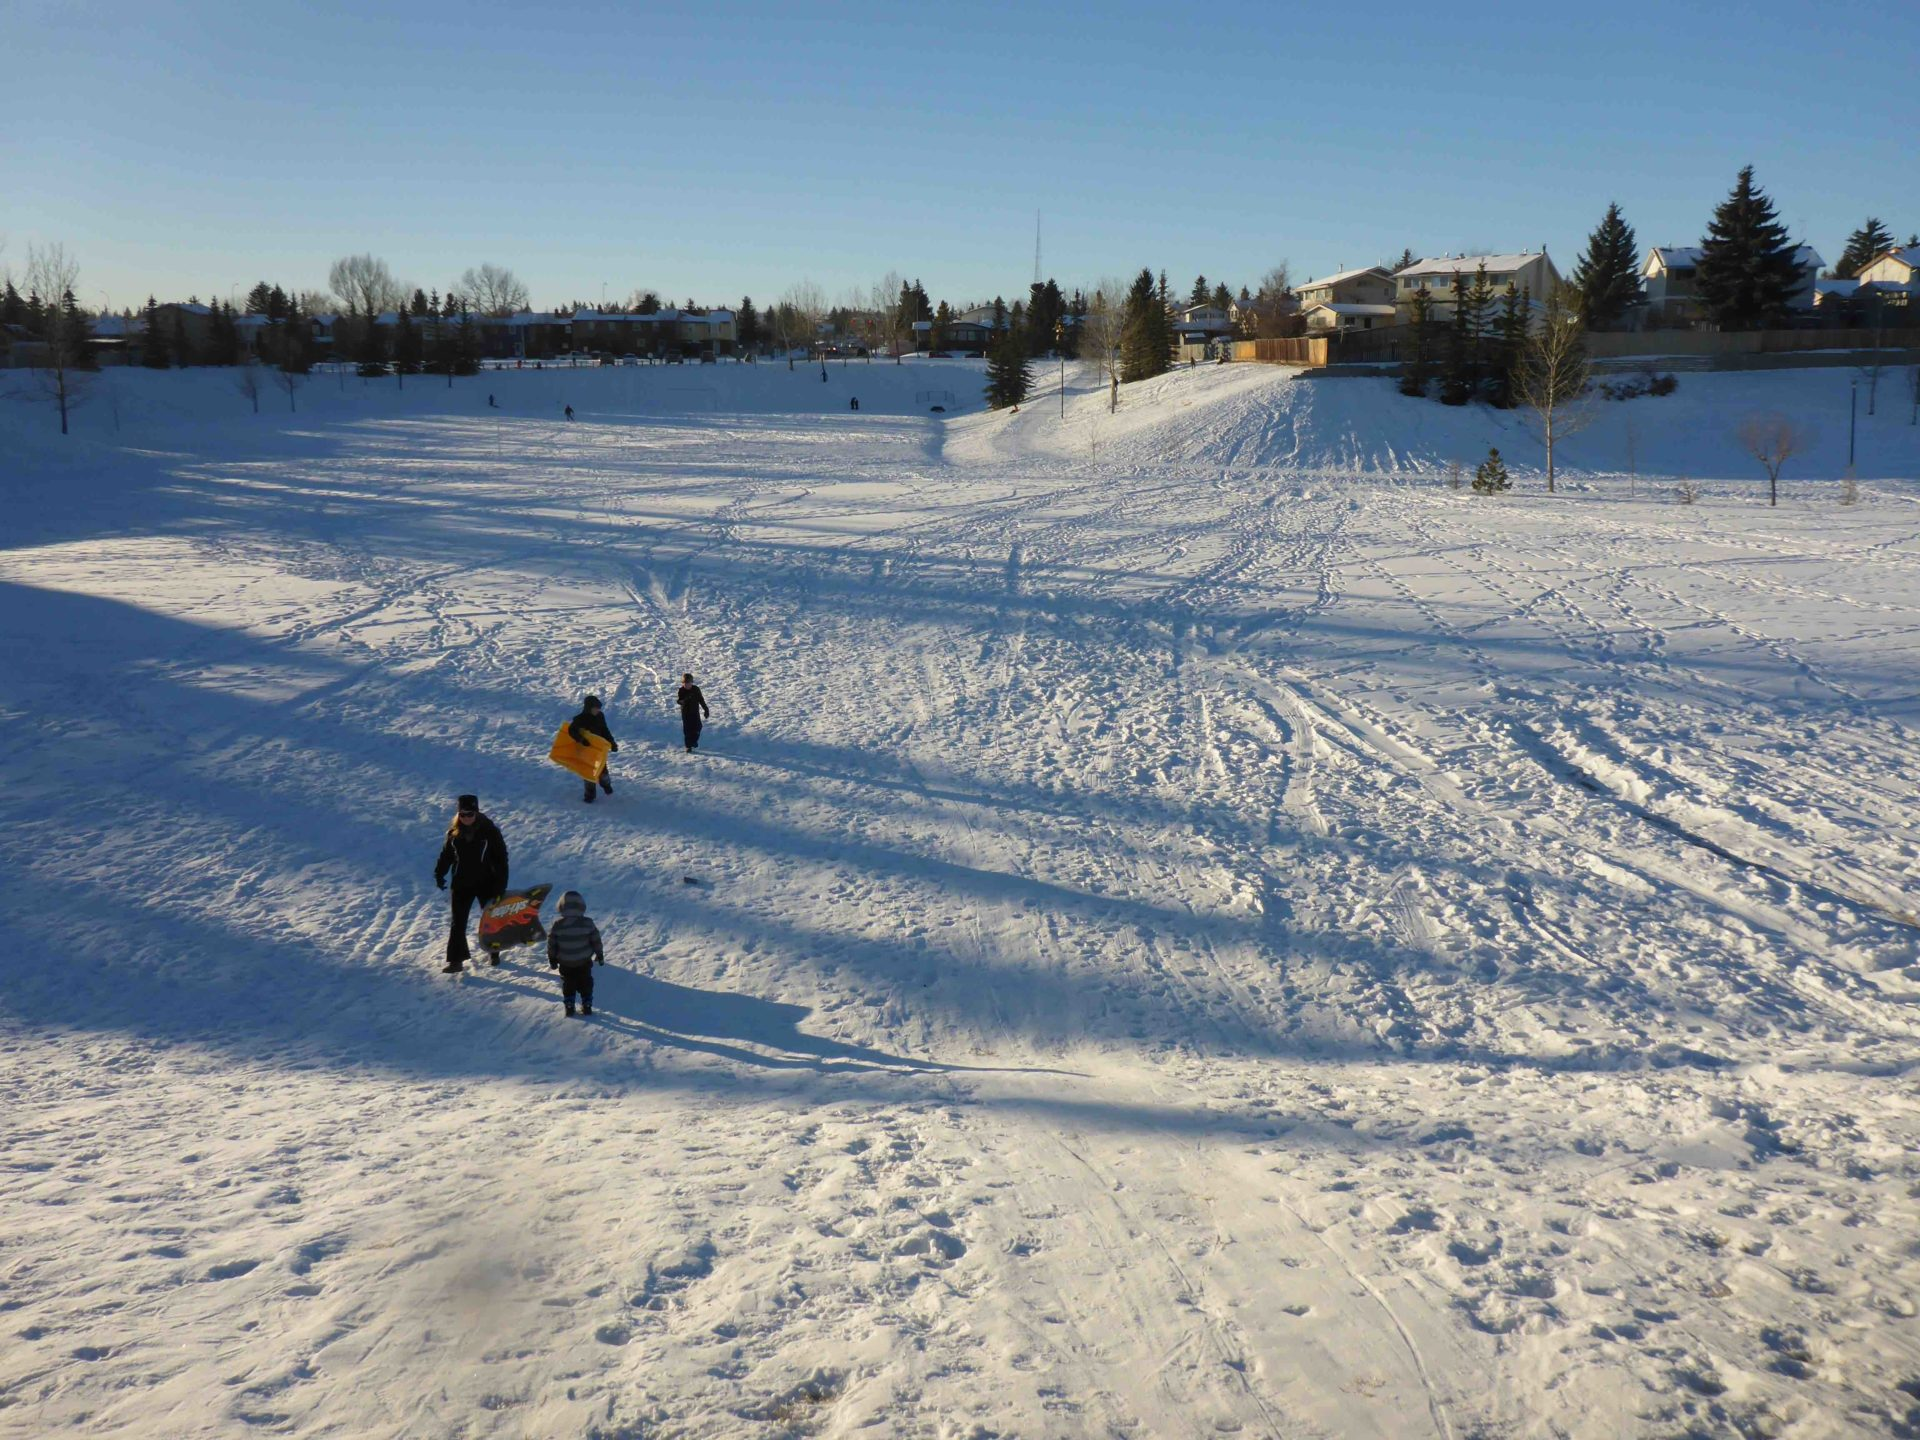 www.iamcalgary.ca I Am Calgary Toboggan and Sled Slopes Fonda Park